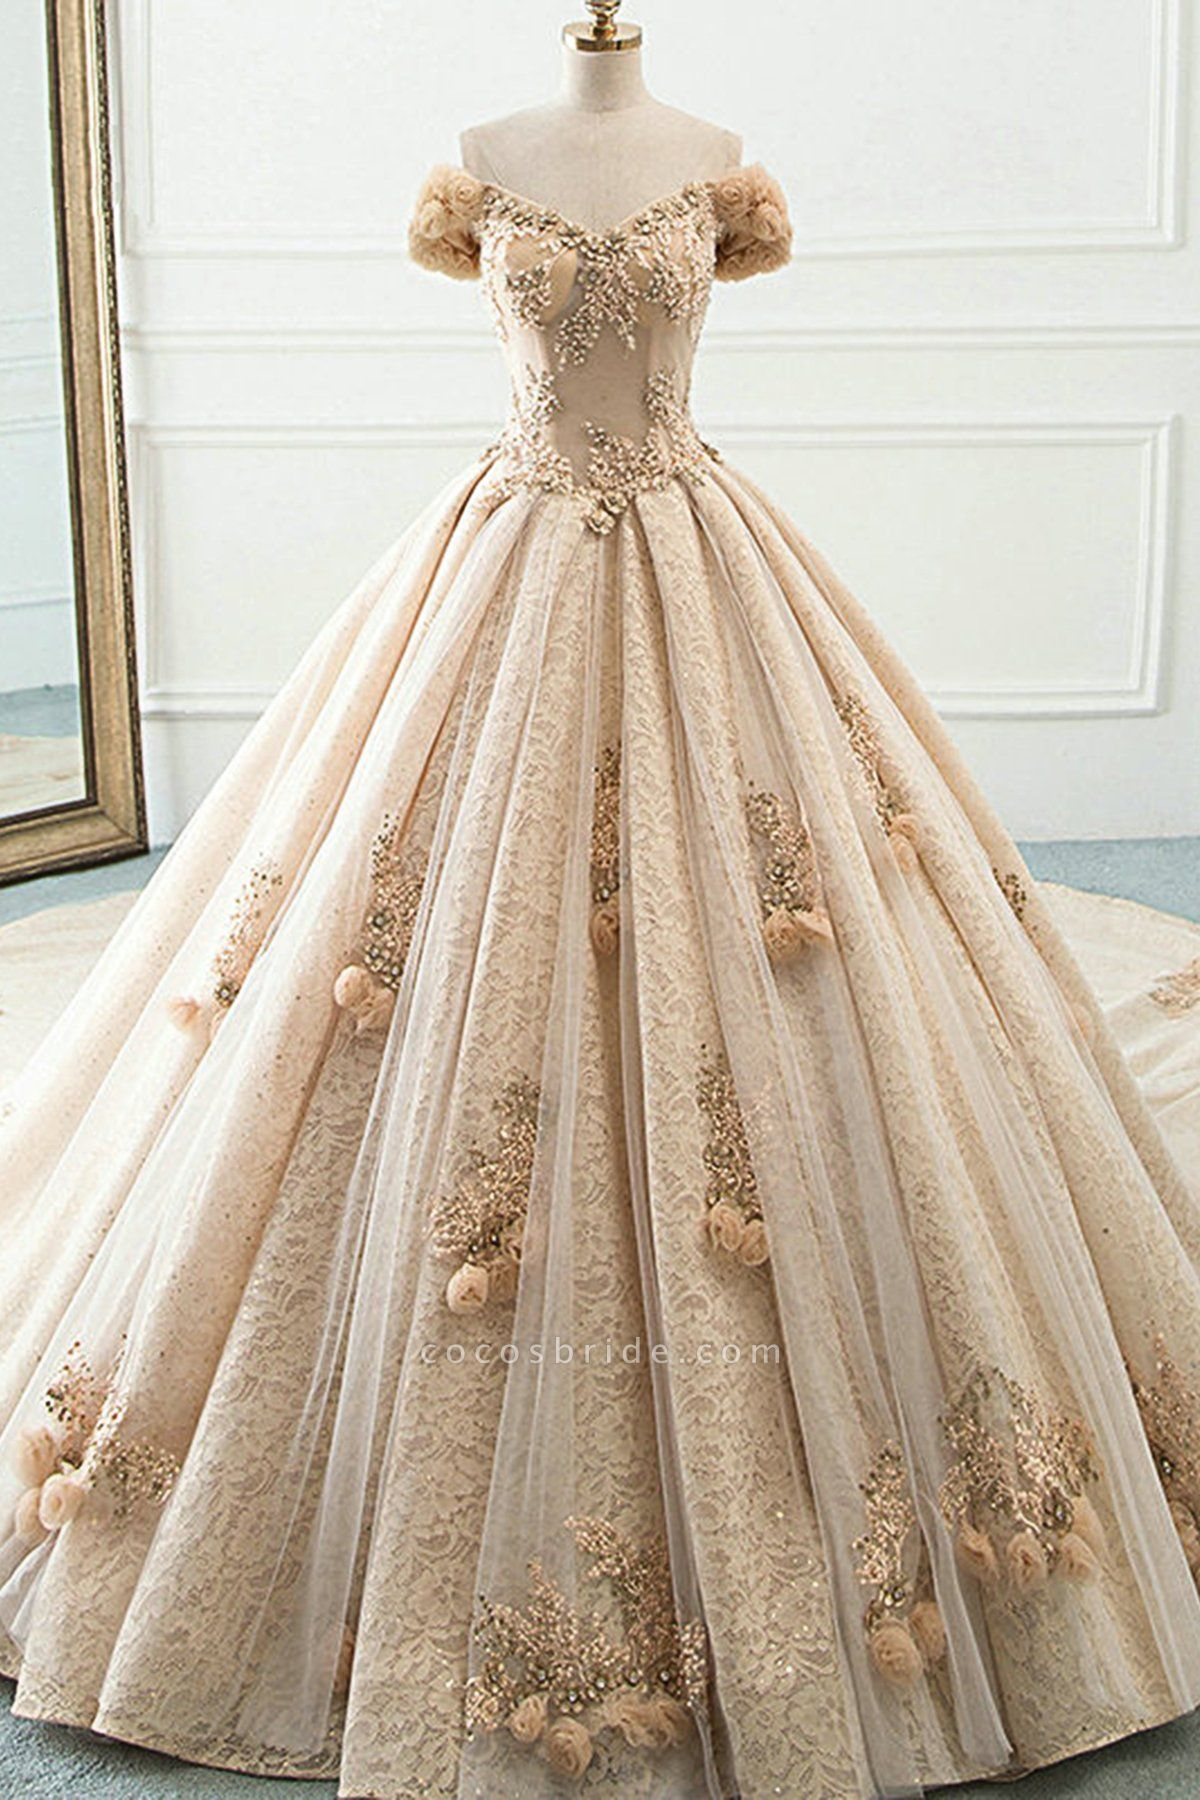 Princess Champagne Lace Off Shoulder Court Train Beaded Wedding Dress